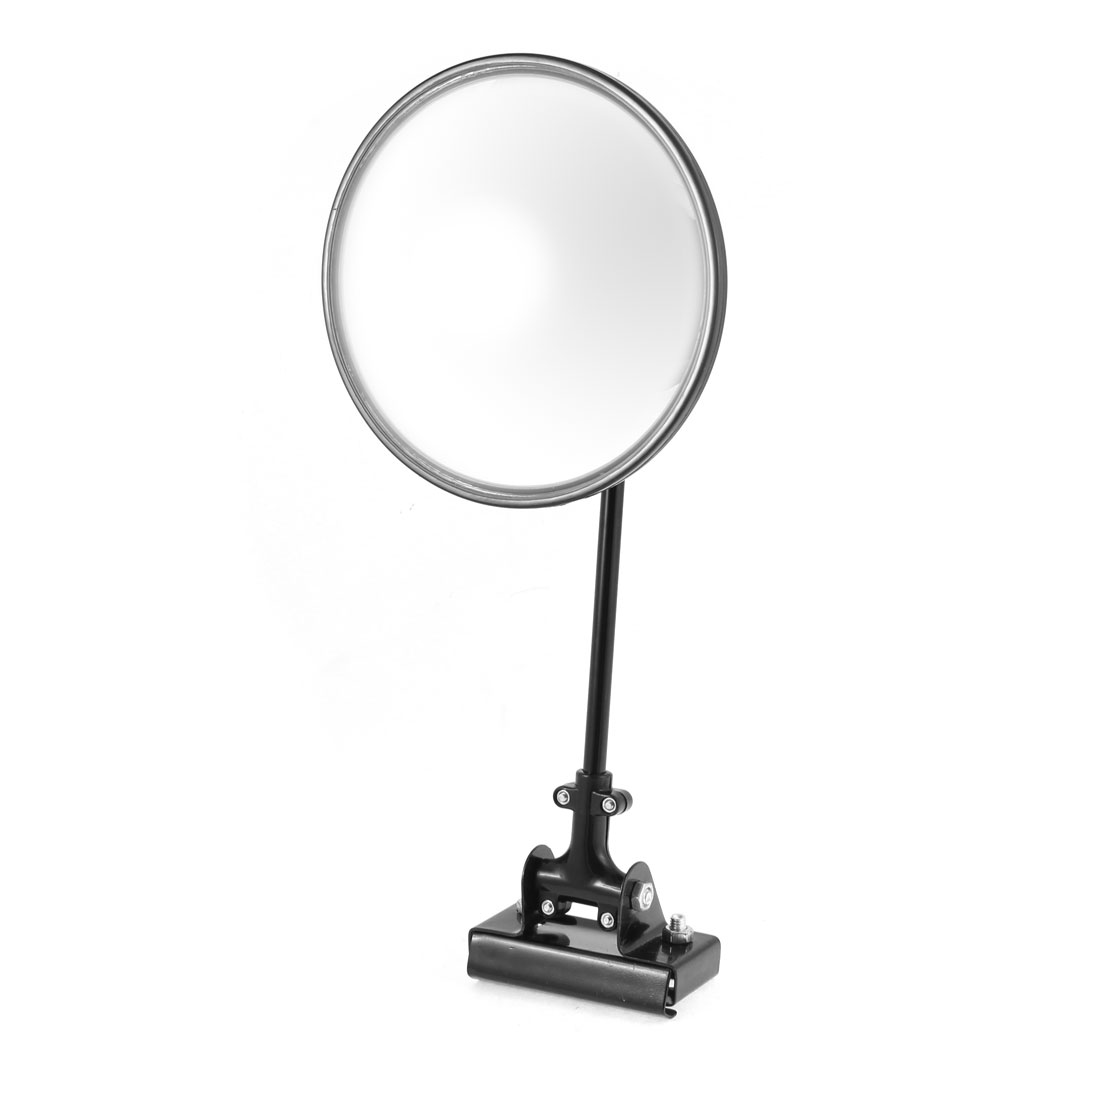 Car SUV Silver Tone Round Shaped Adjustable Angle Left Sideview Assistant Mirror